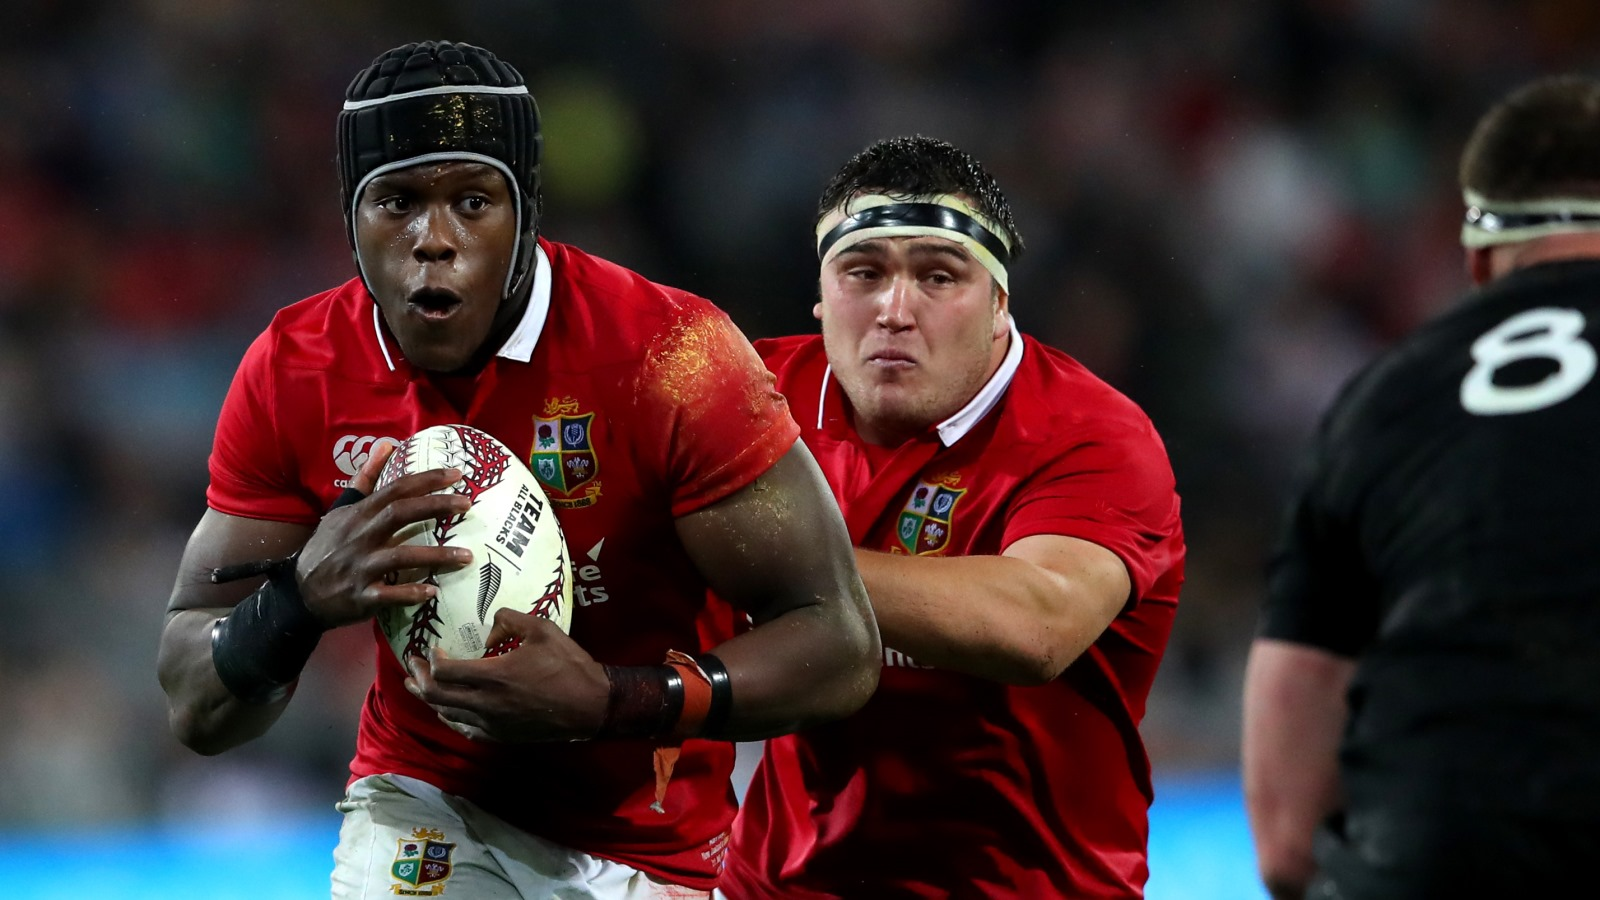 Lions star Itoje steals the show in Europe